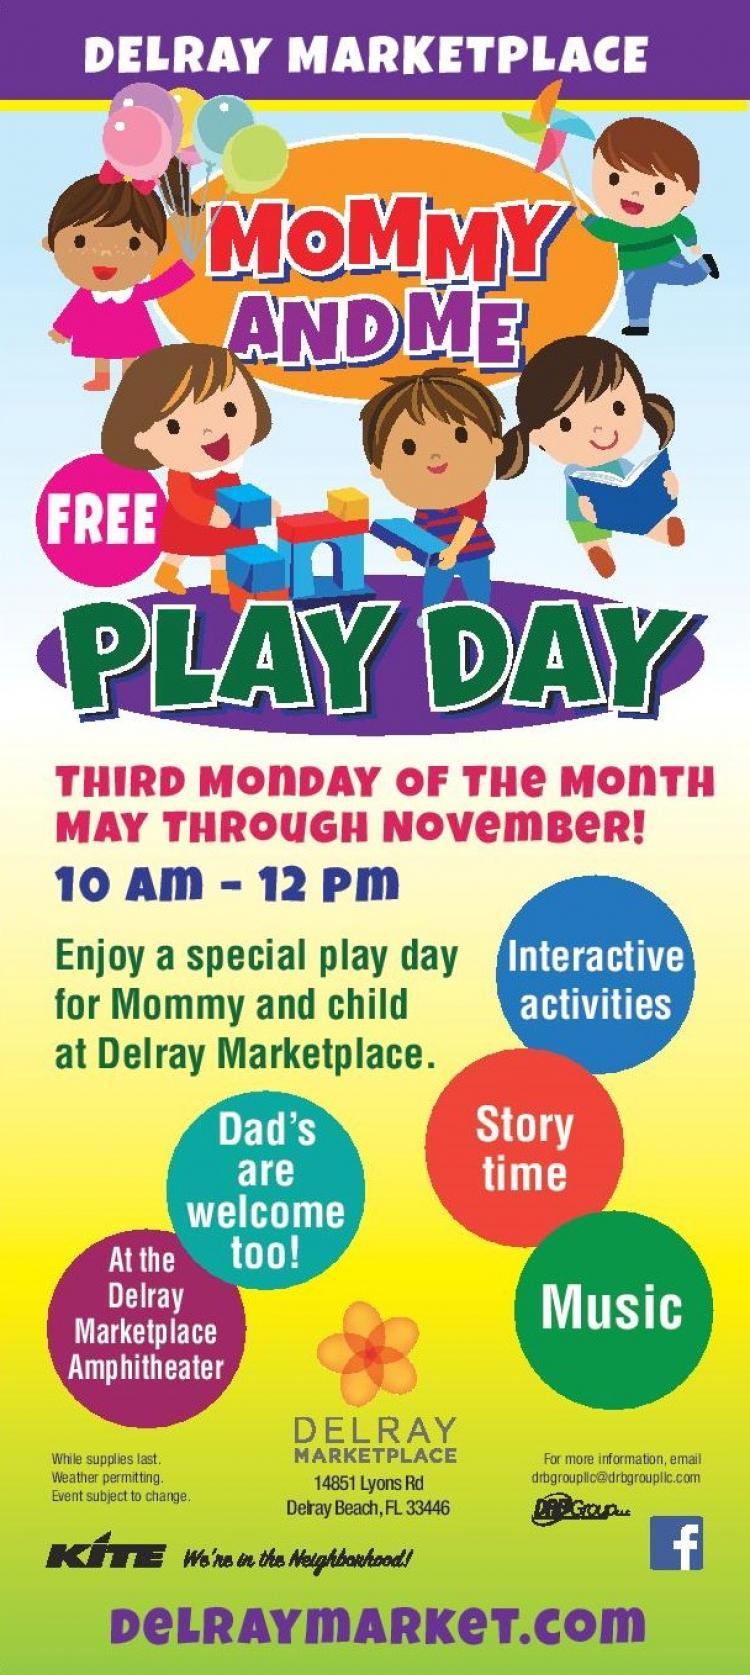 Mommy and Me Play Days at the Delray Marketplace